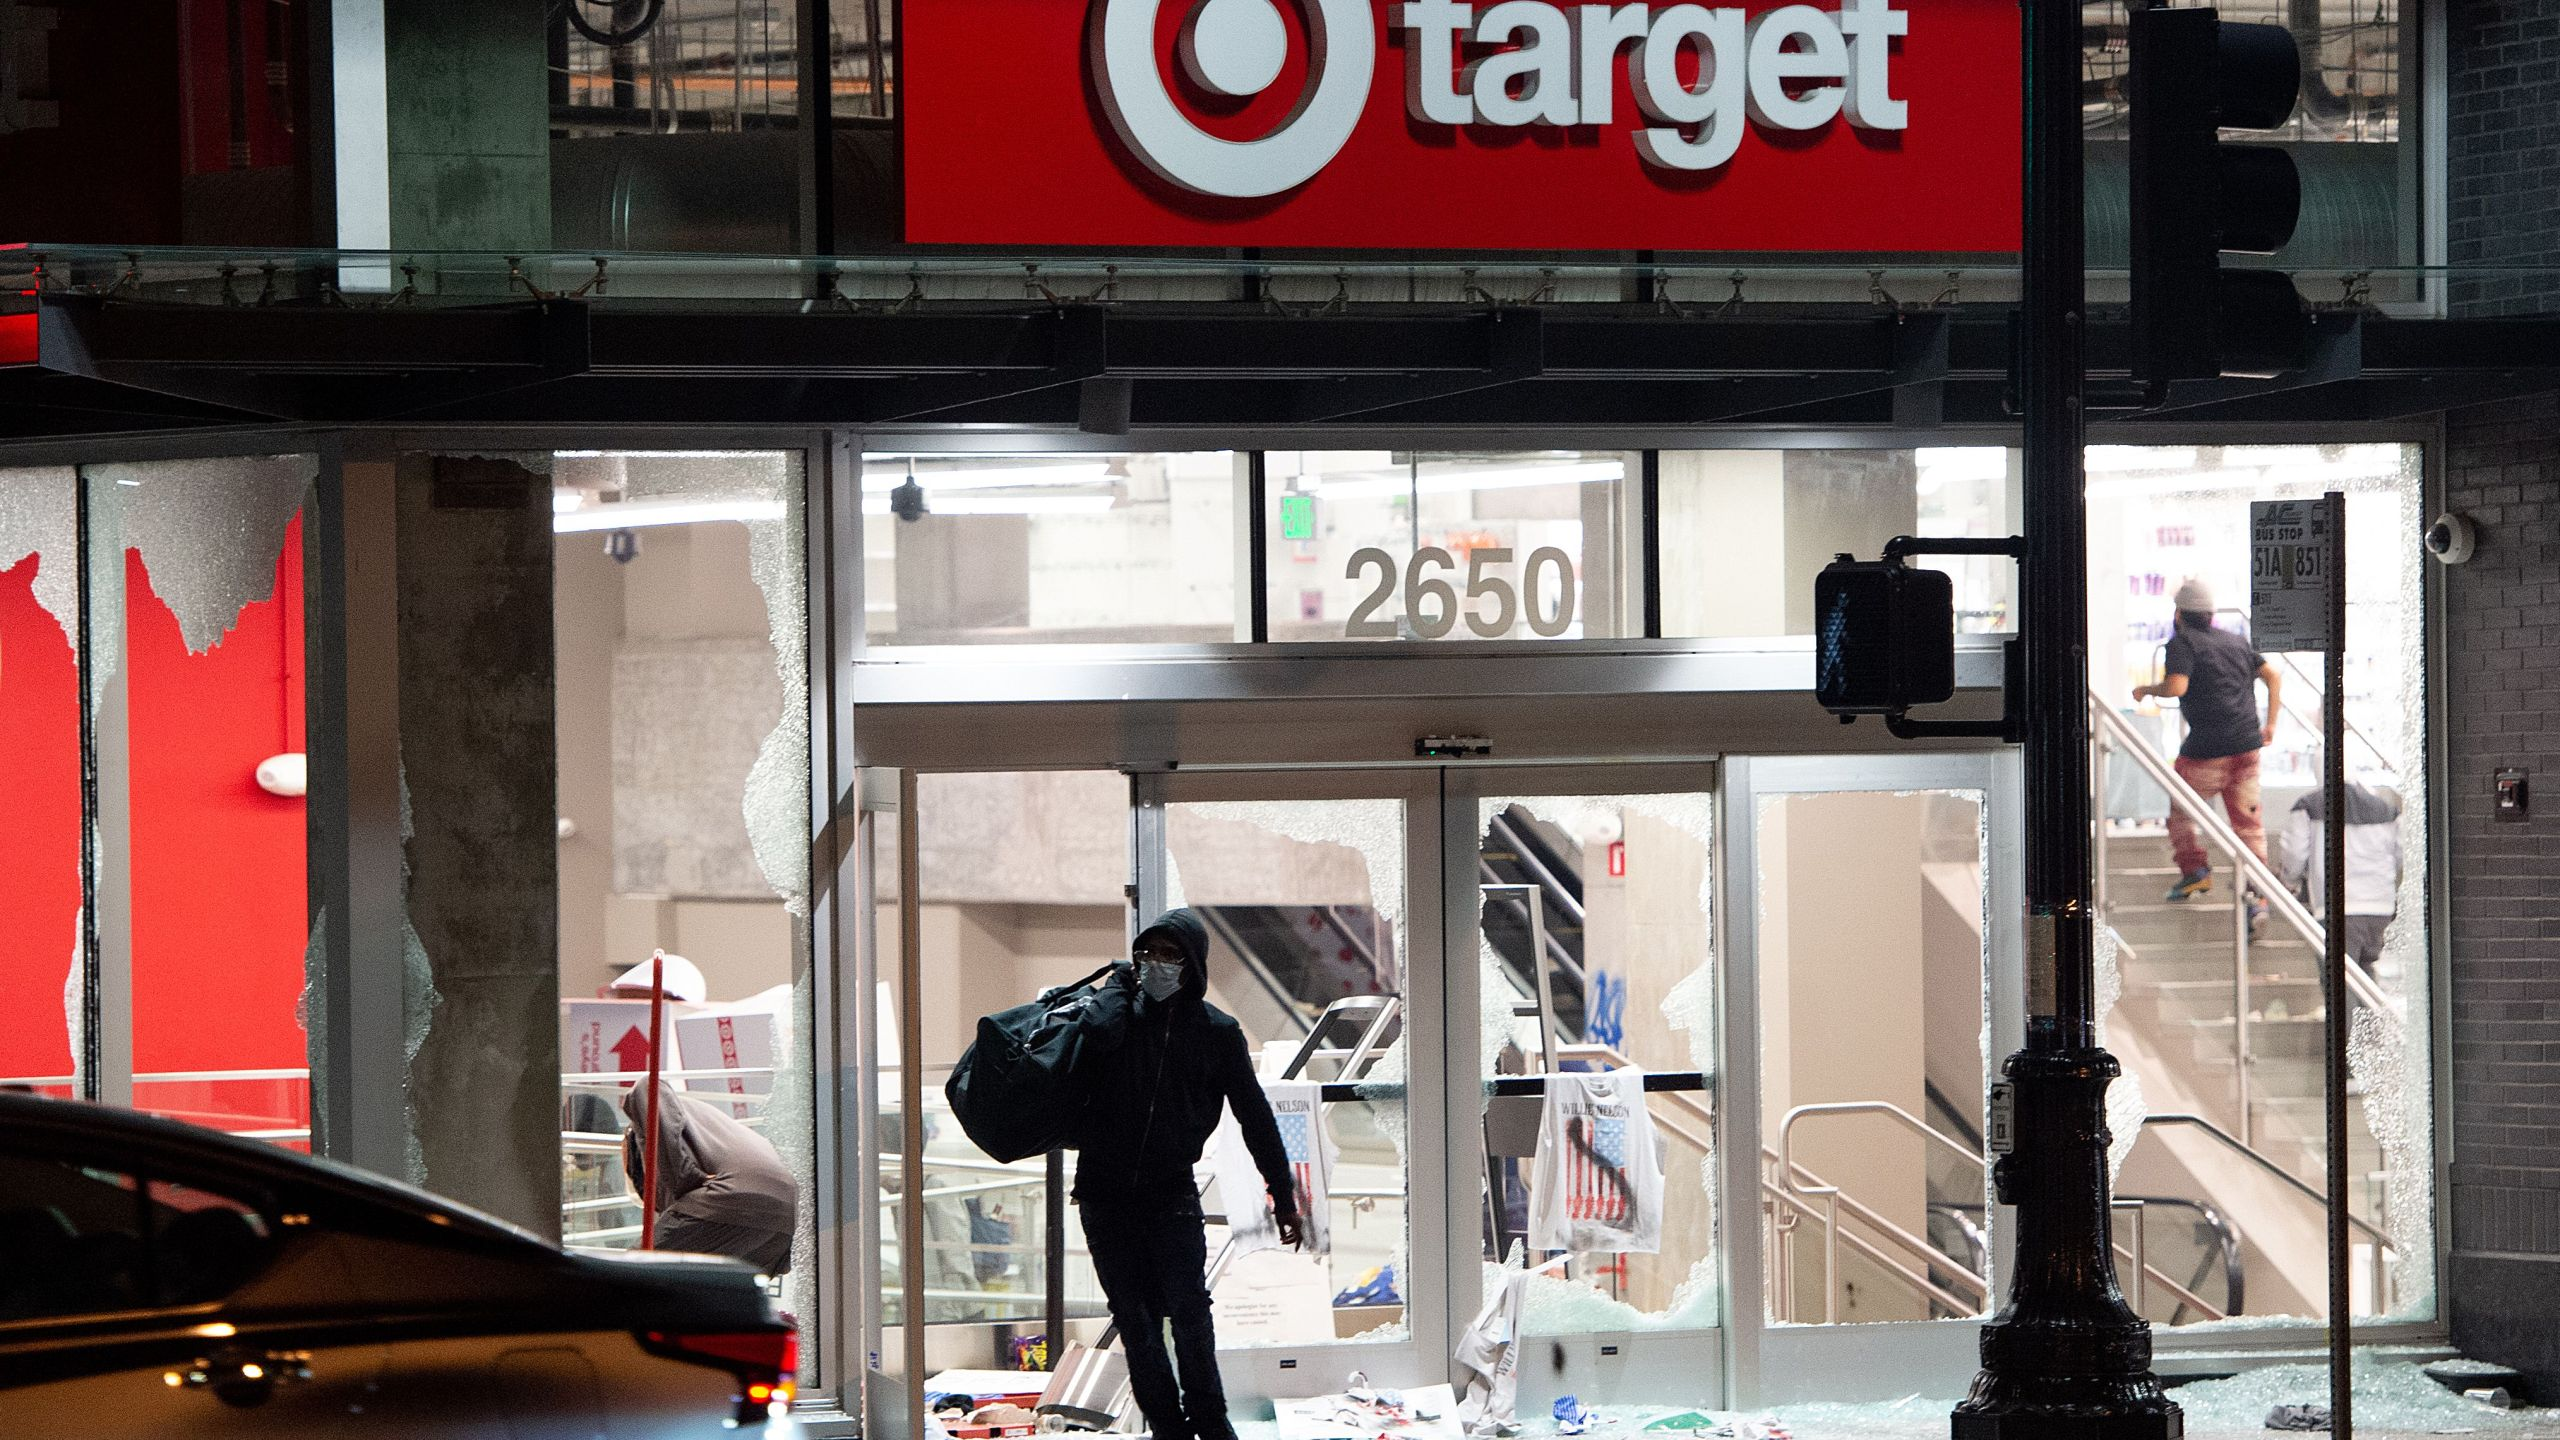 A looter walks out of a Target store in Oakland on May 30, 2020. (JOSH EDELSON/AFP via Getty Images)